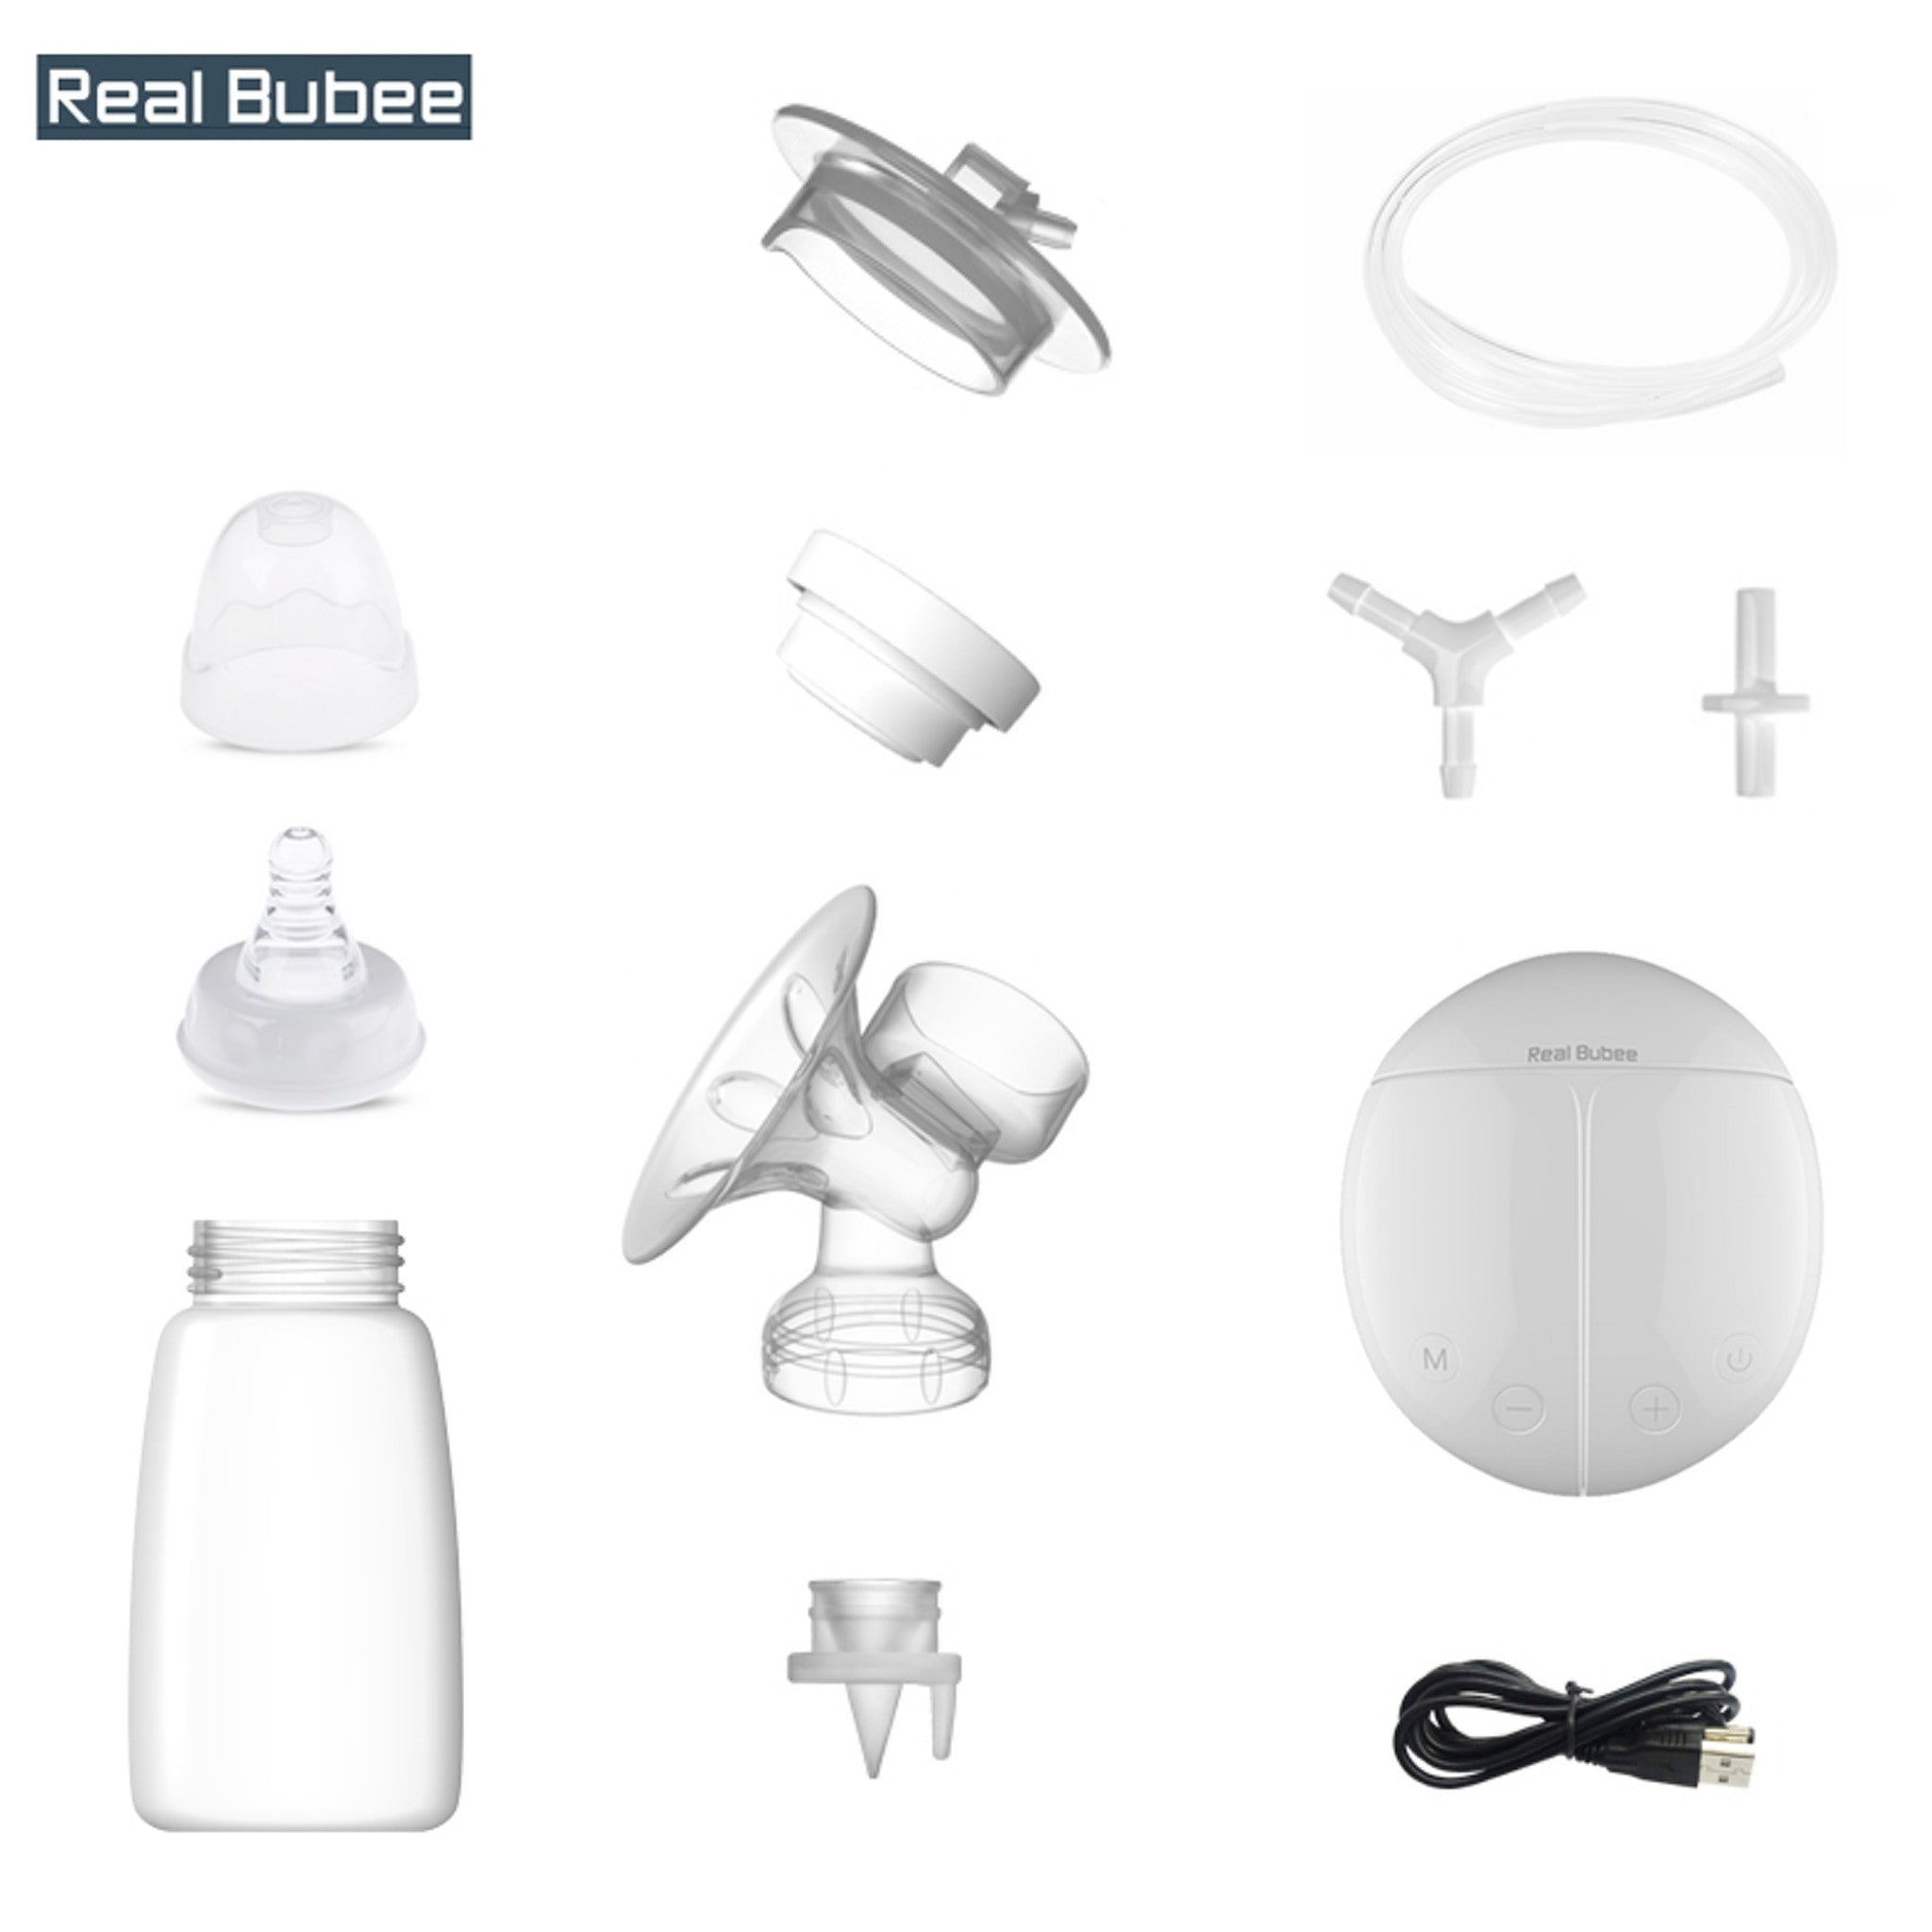 Replacement Parts for Real Bubee Intelligent Double Pump